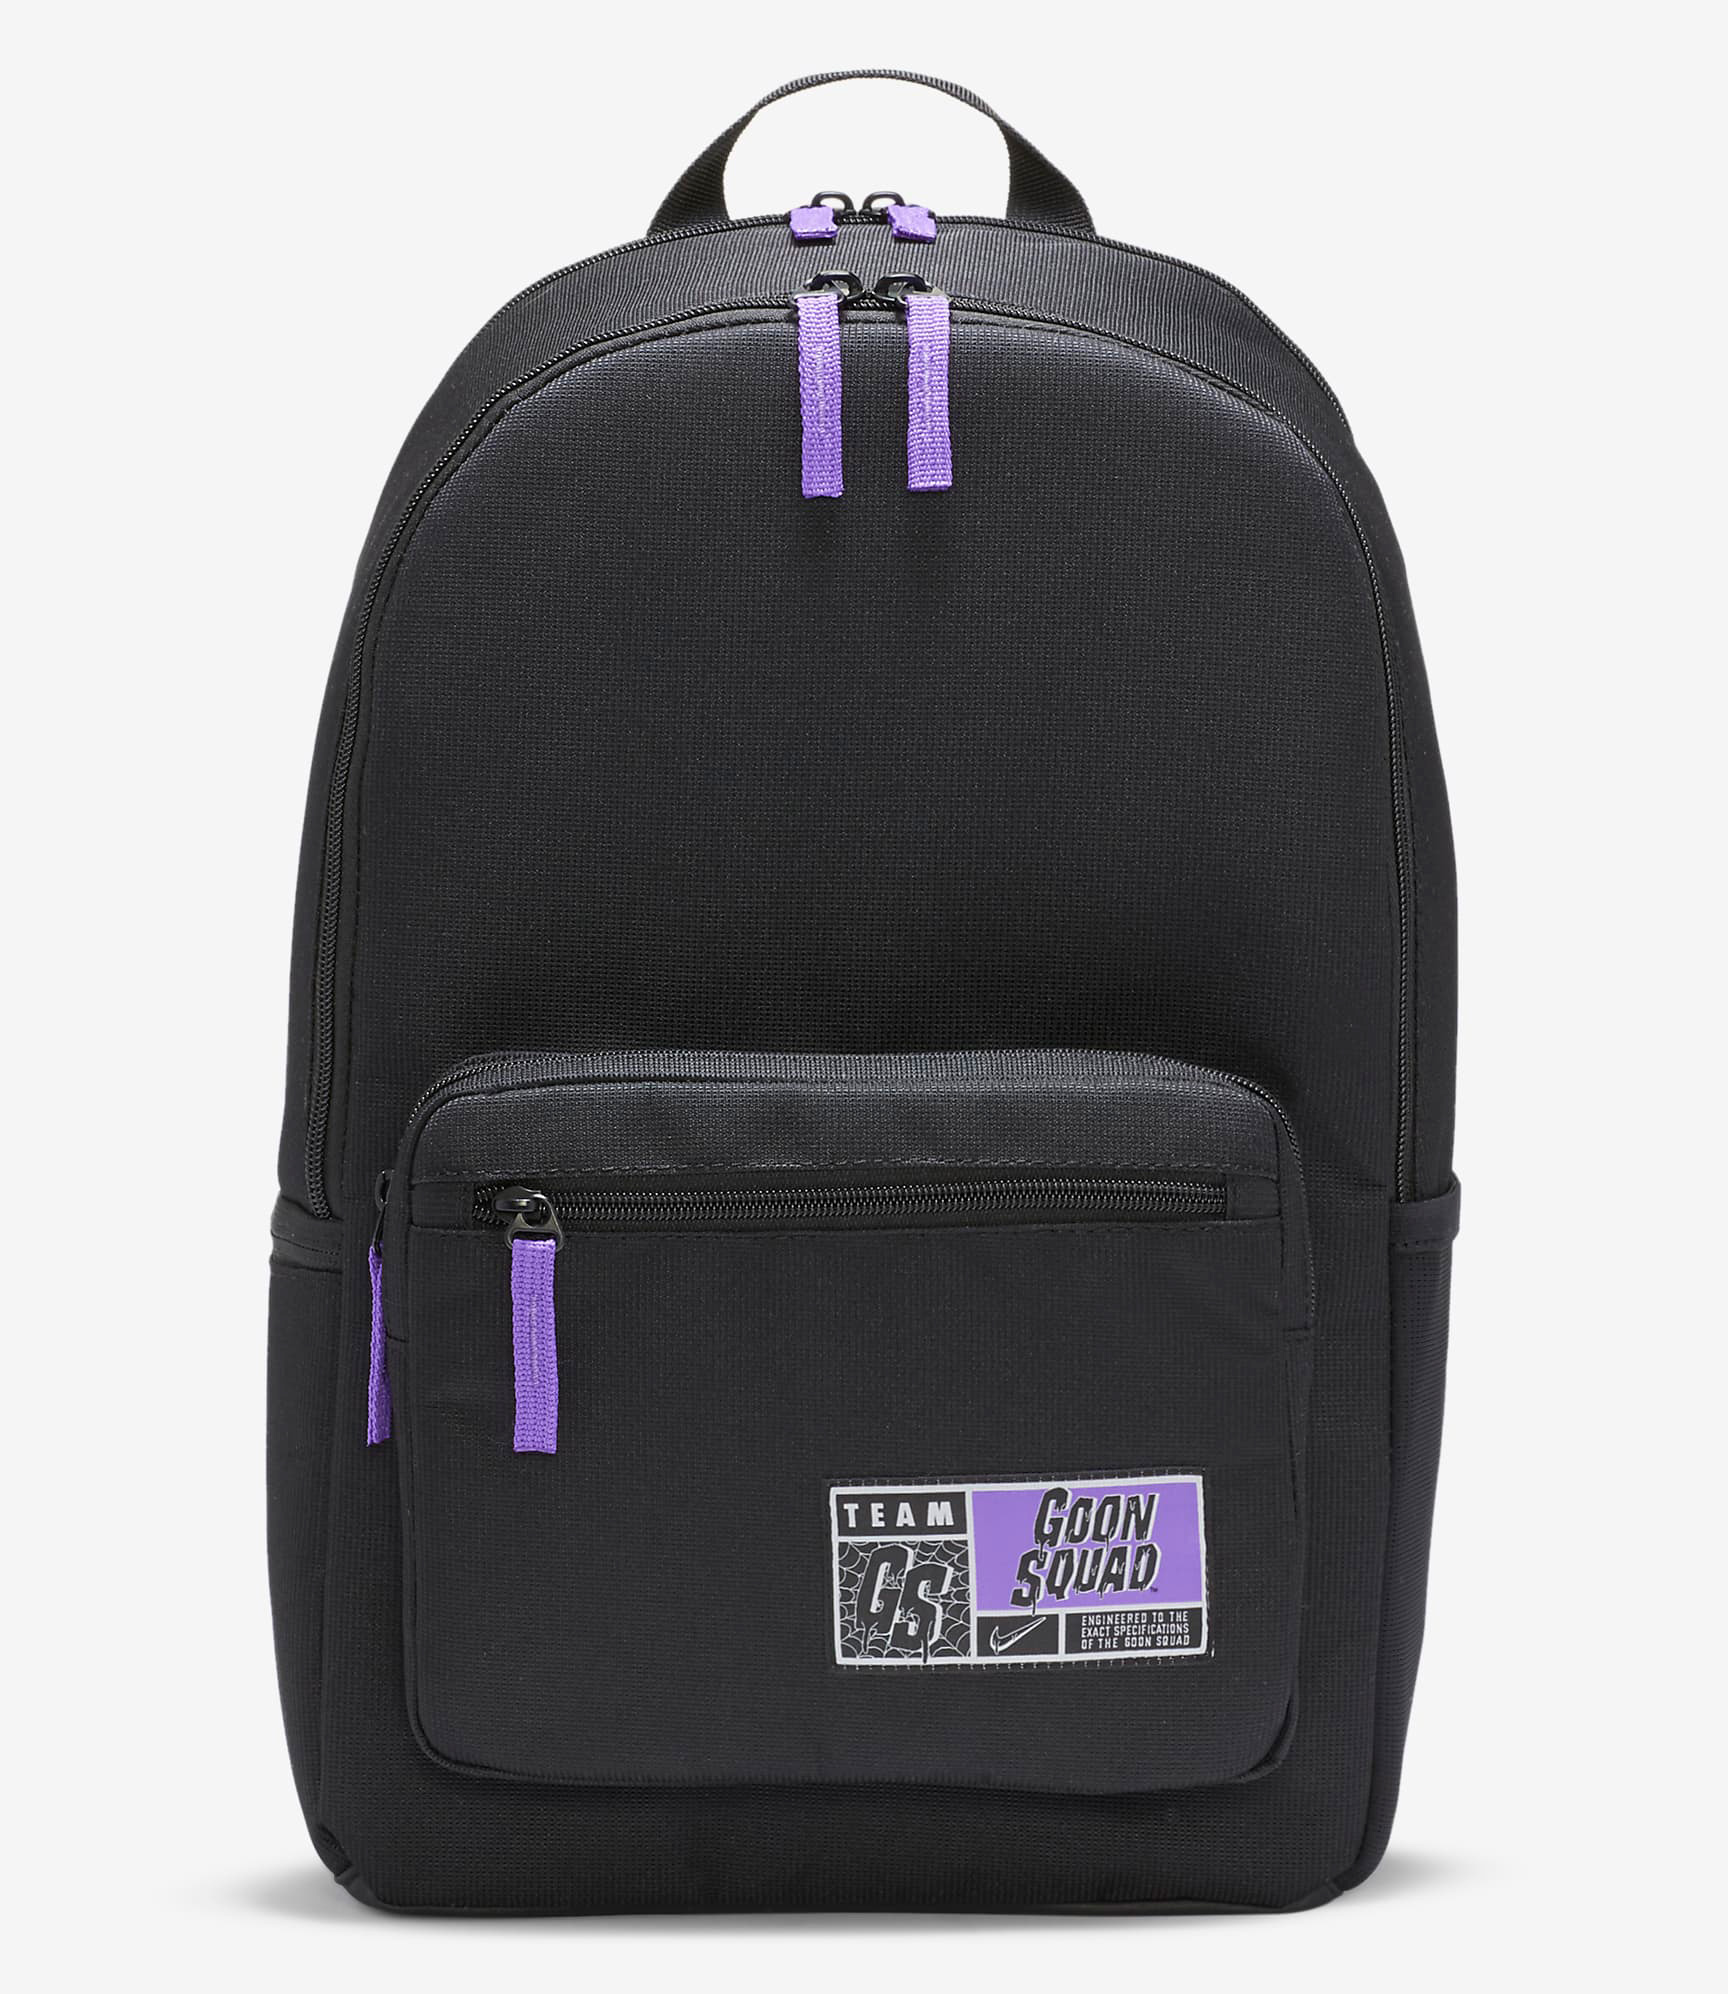 nike-space-jam-a-new-legacy-goon-squad-backpack